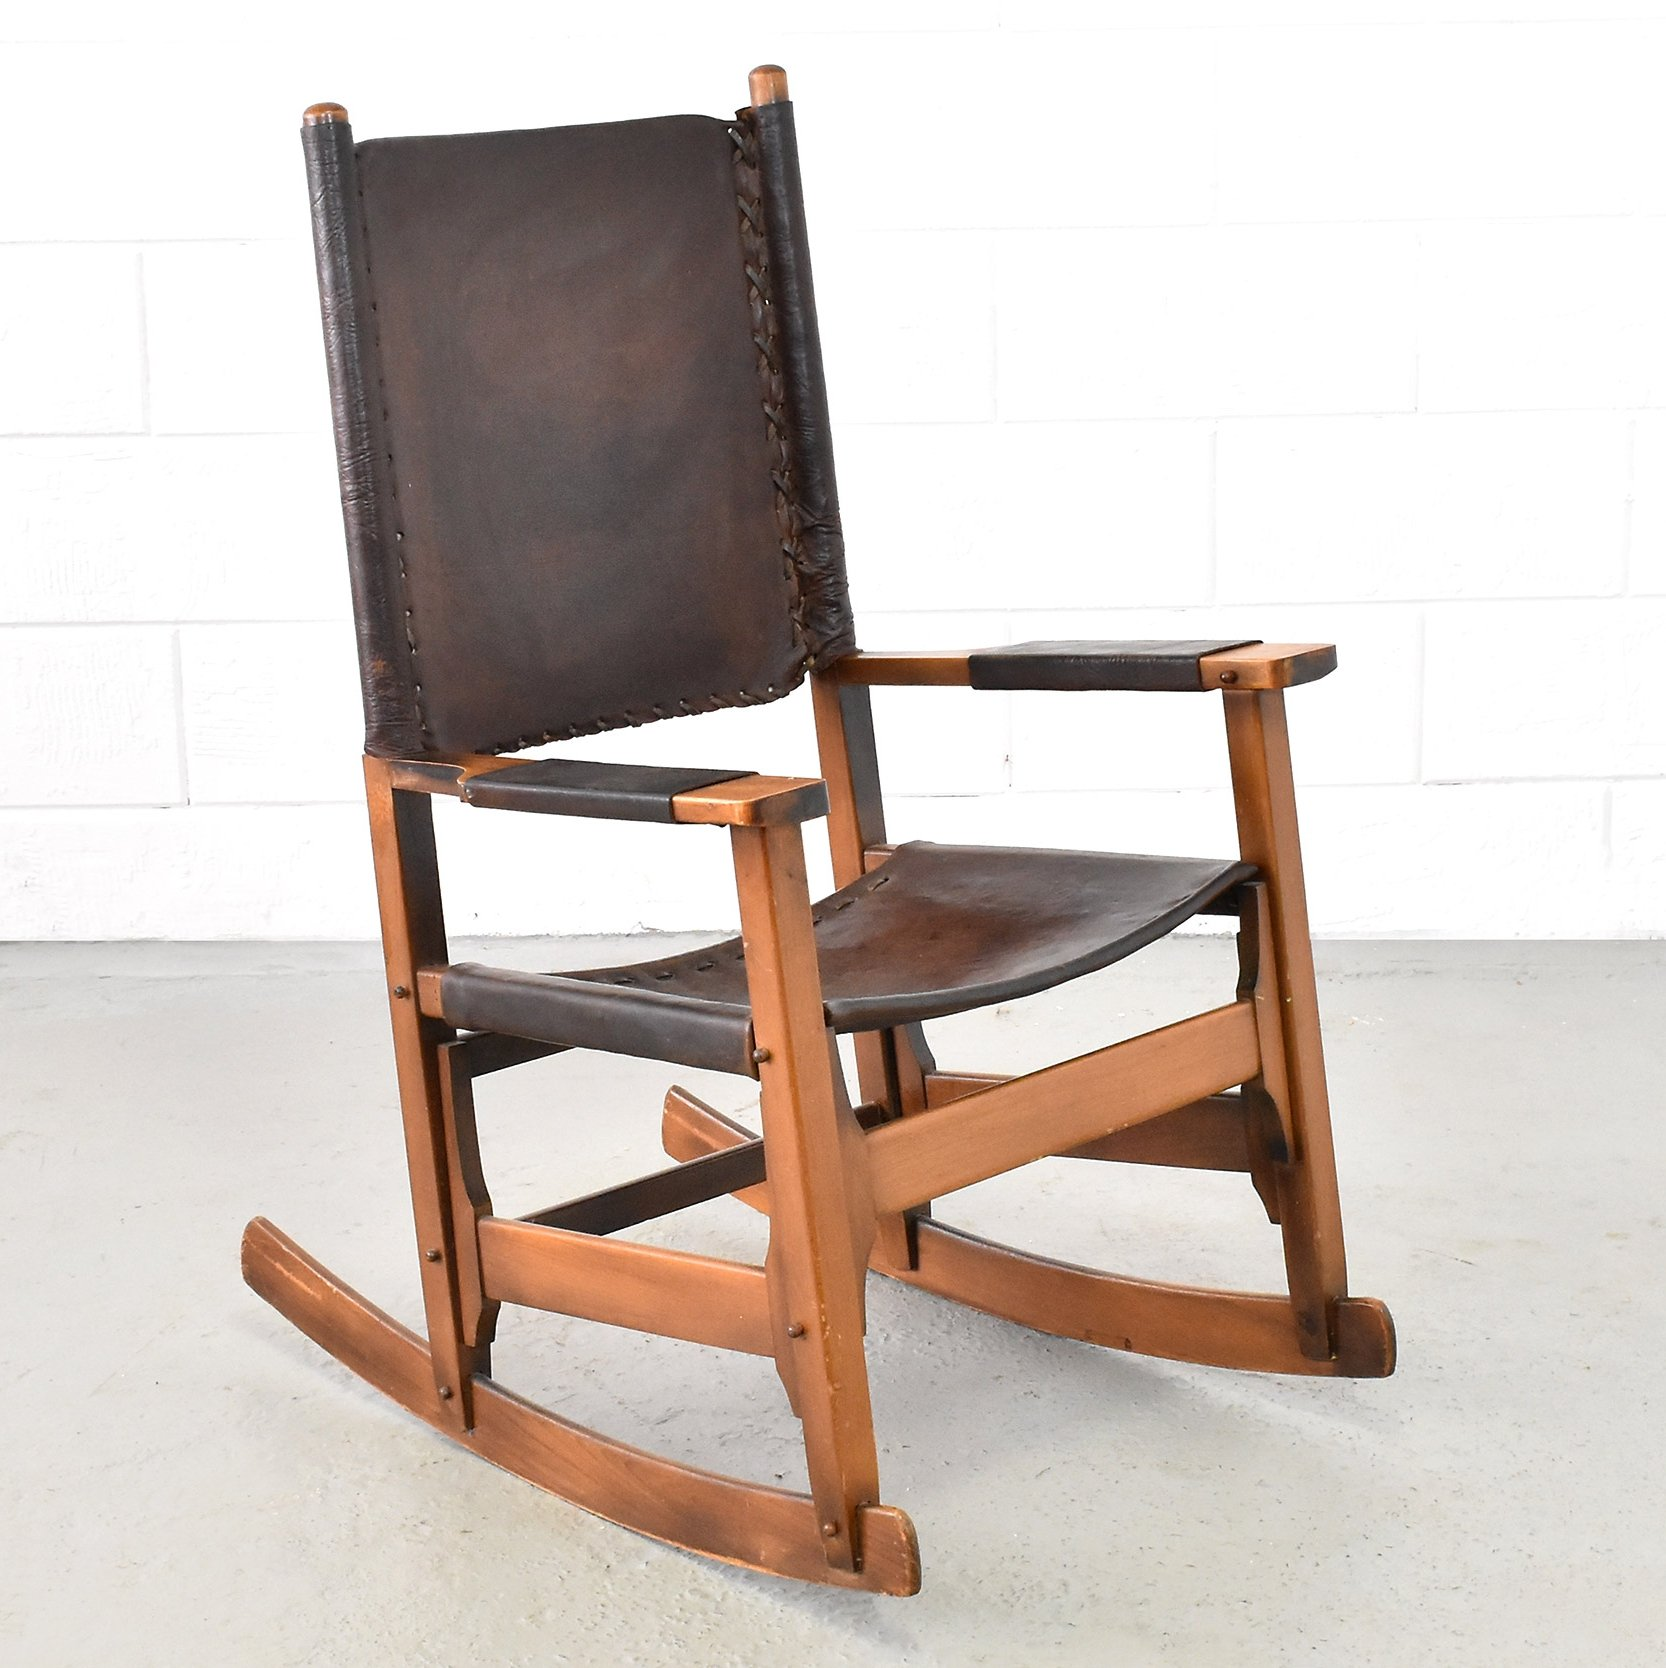 Leather Rocking Chair Patinated Leather Rocking Chair Produced By Arte Sano 1960s